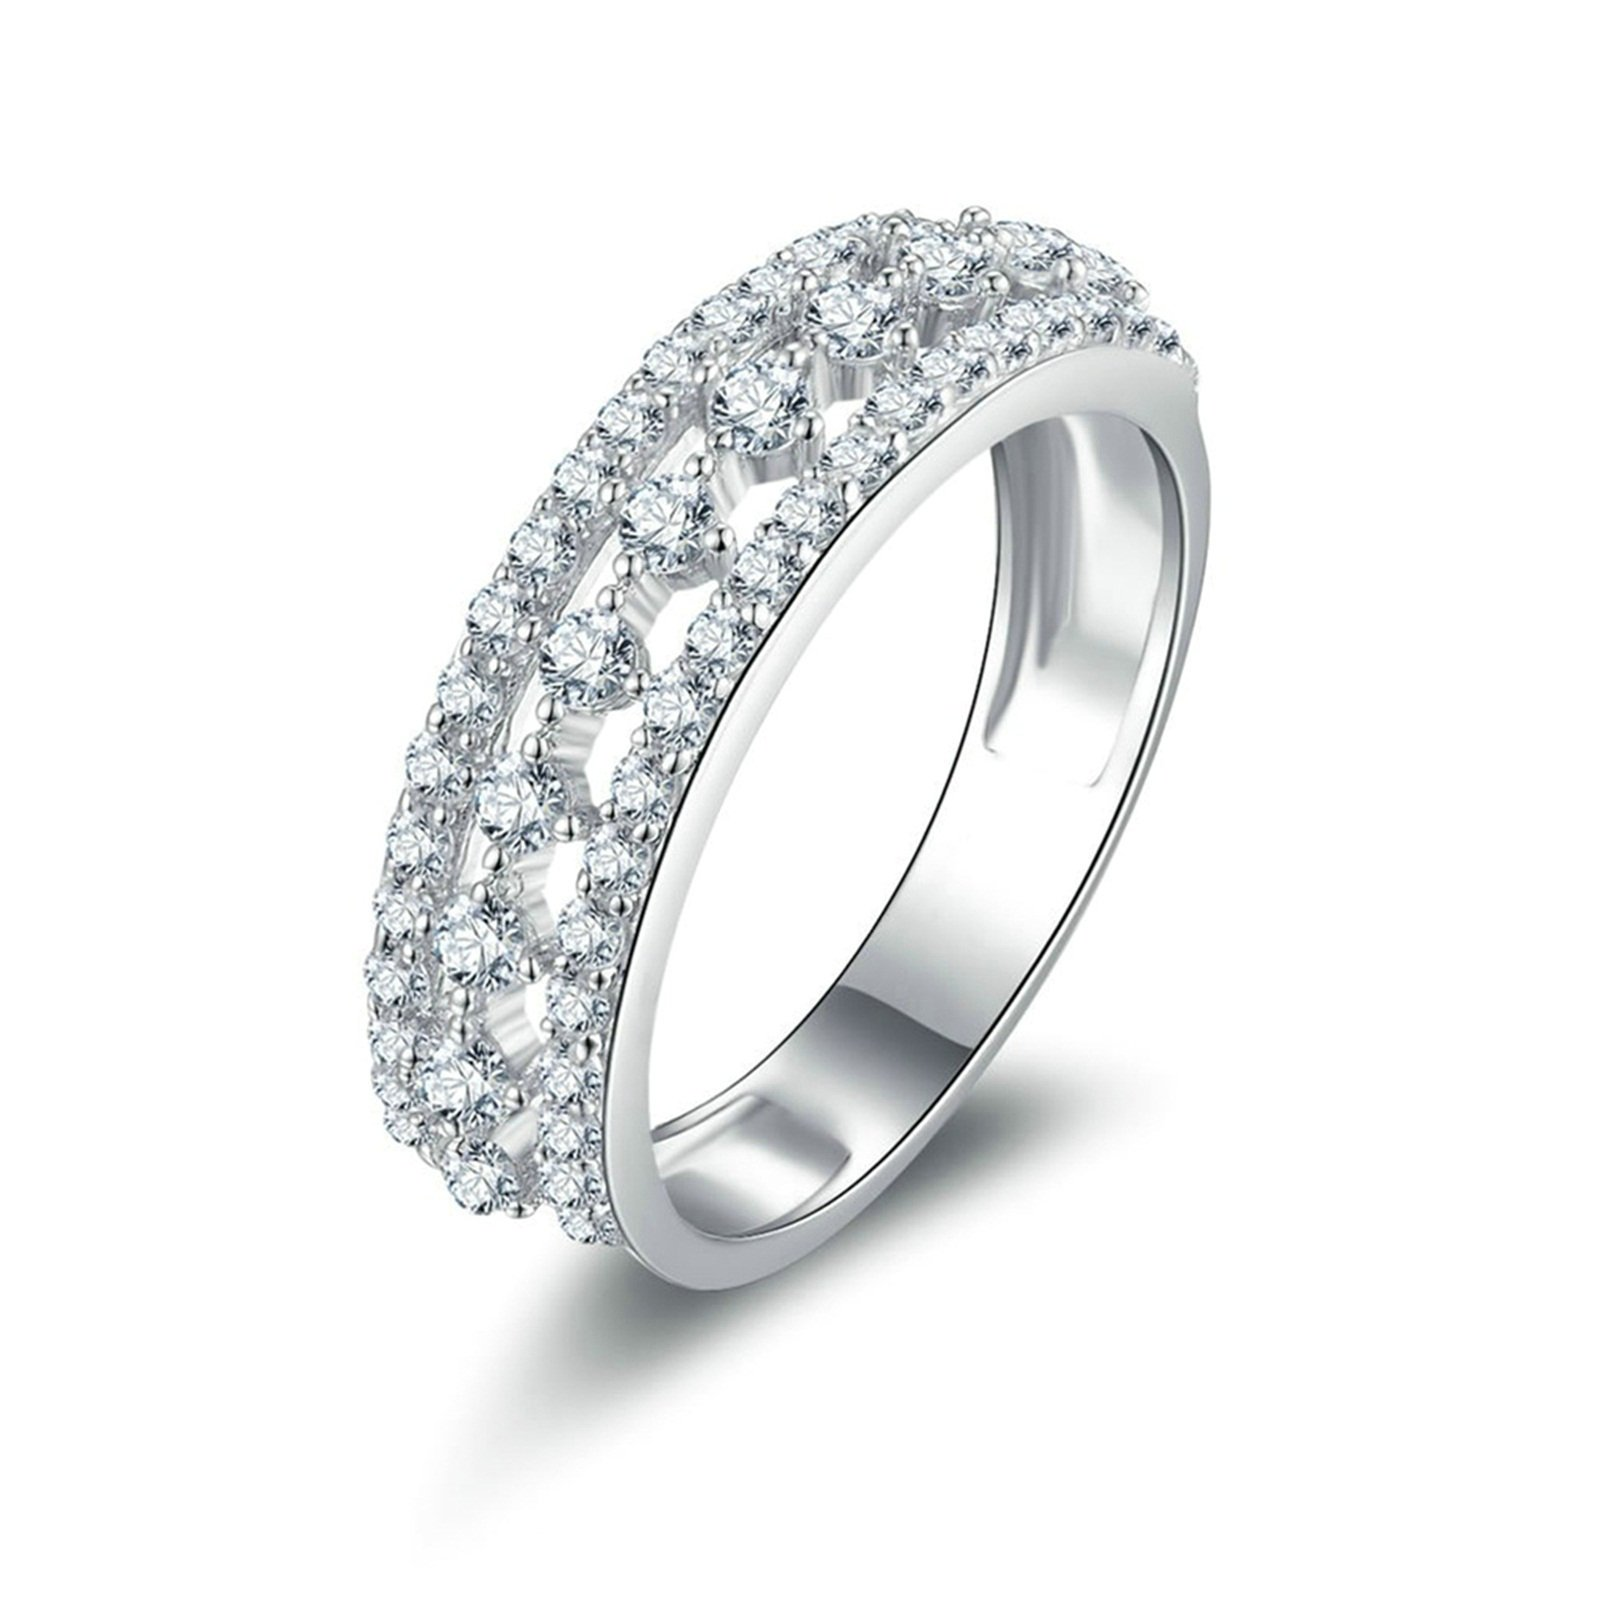 Beydodo Ring Band Engagement Ring Hollow Ring Round White Cubic Zirconia Size 5.5 Anniversary Gift